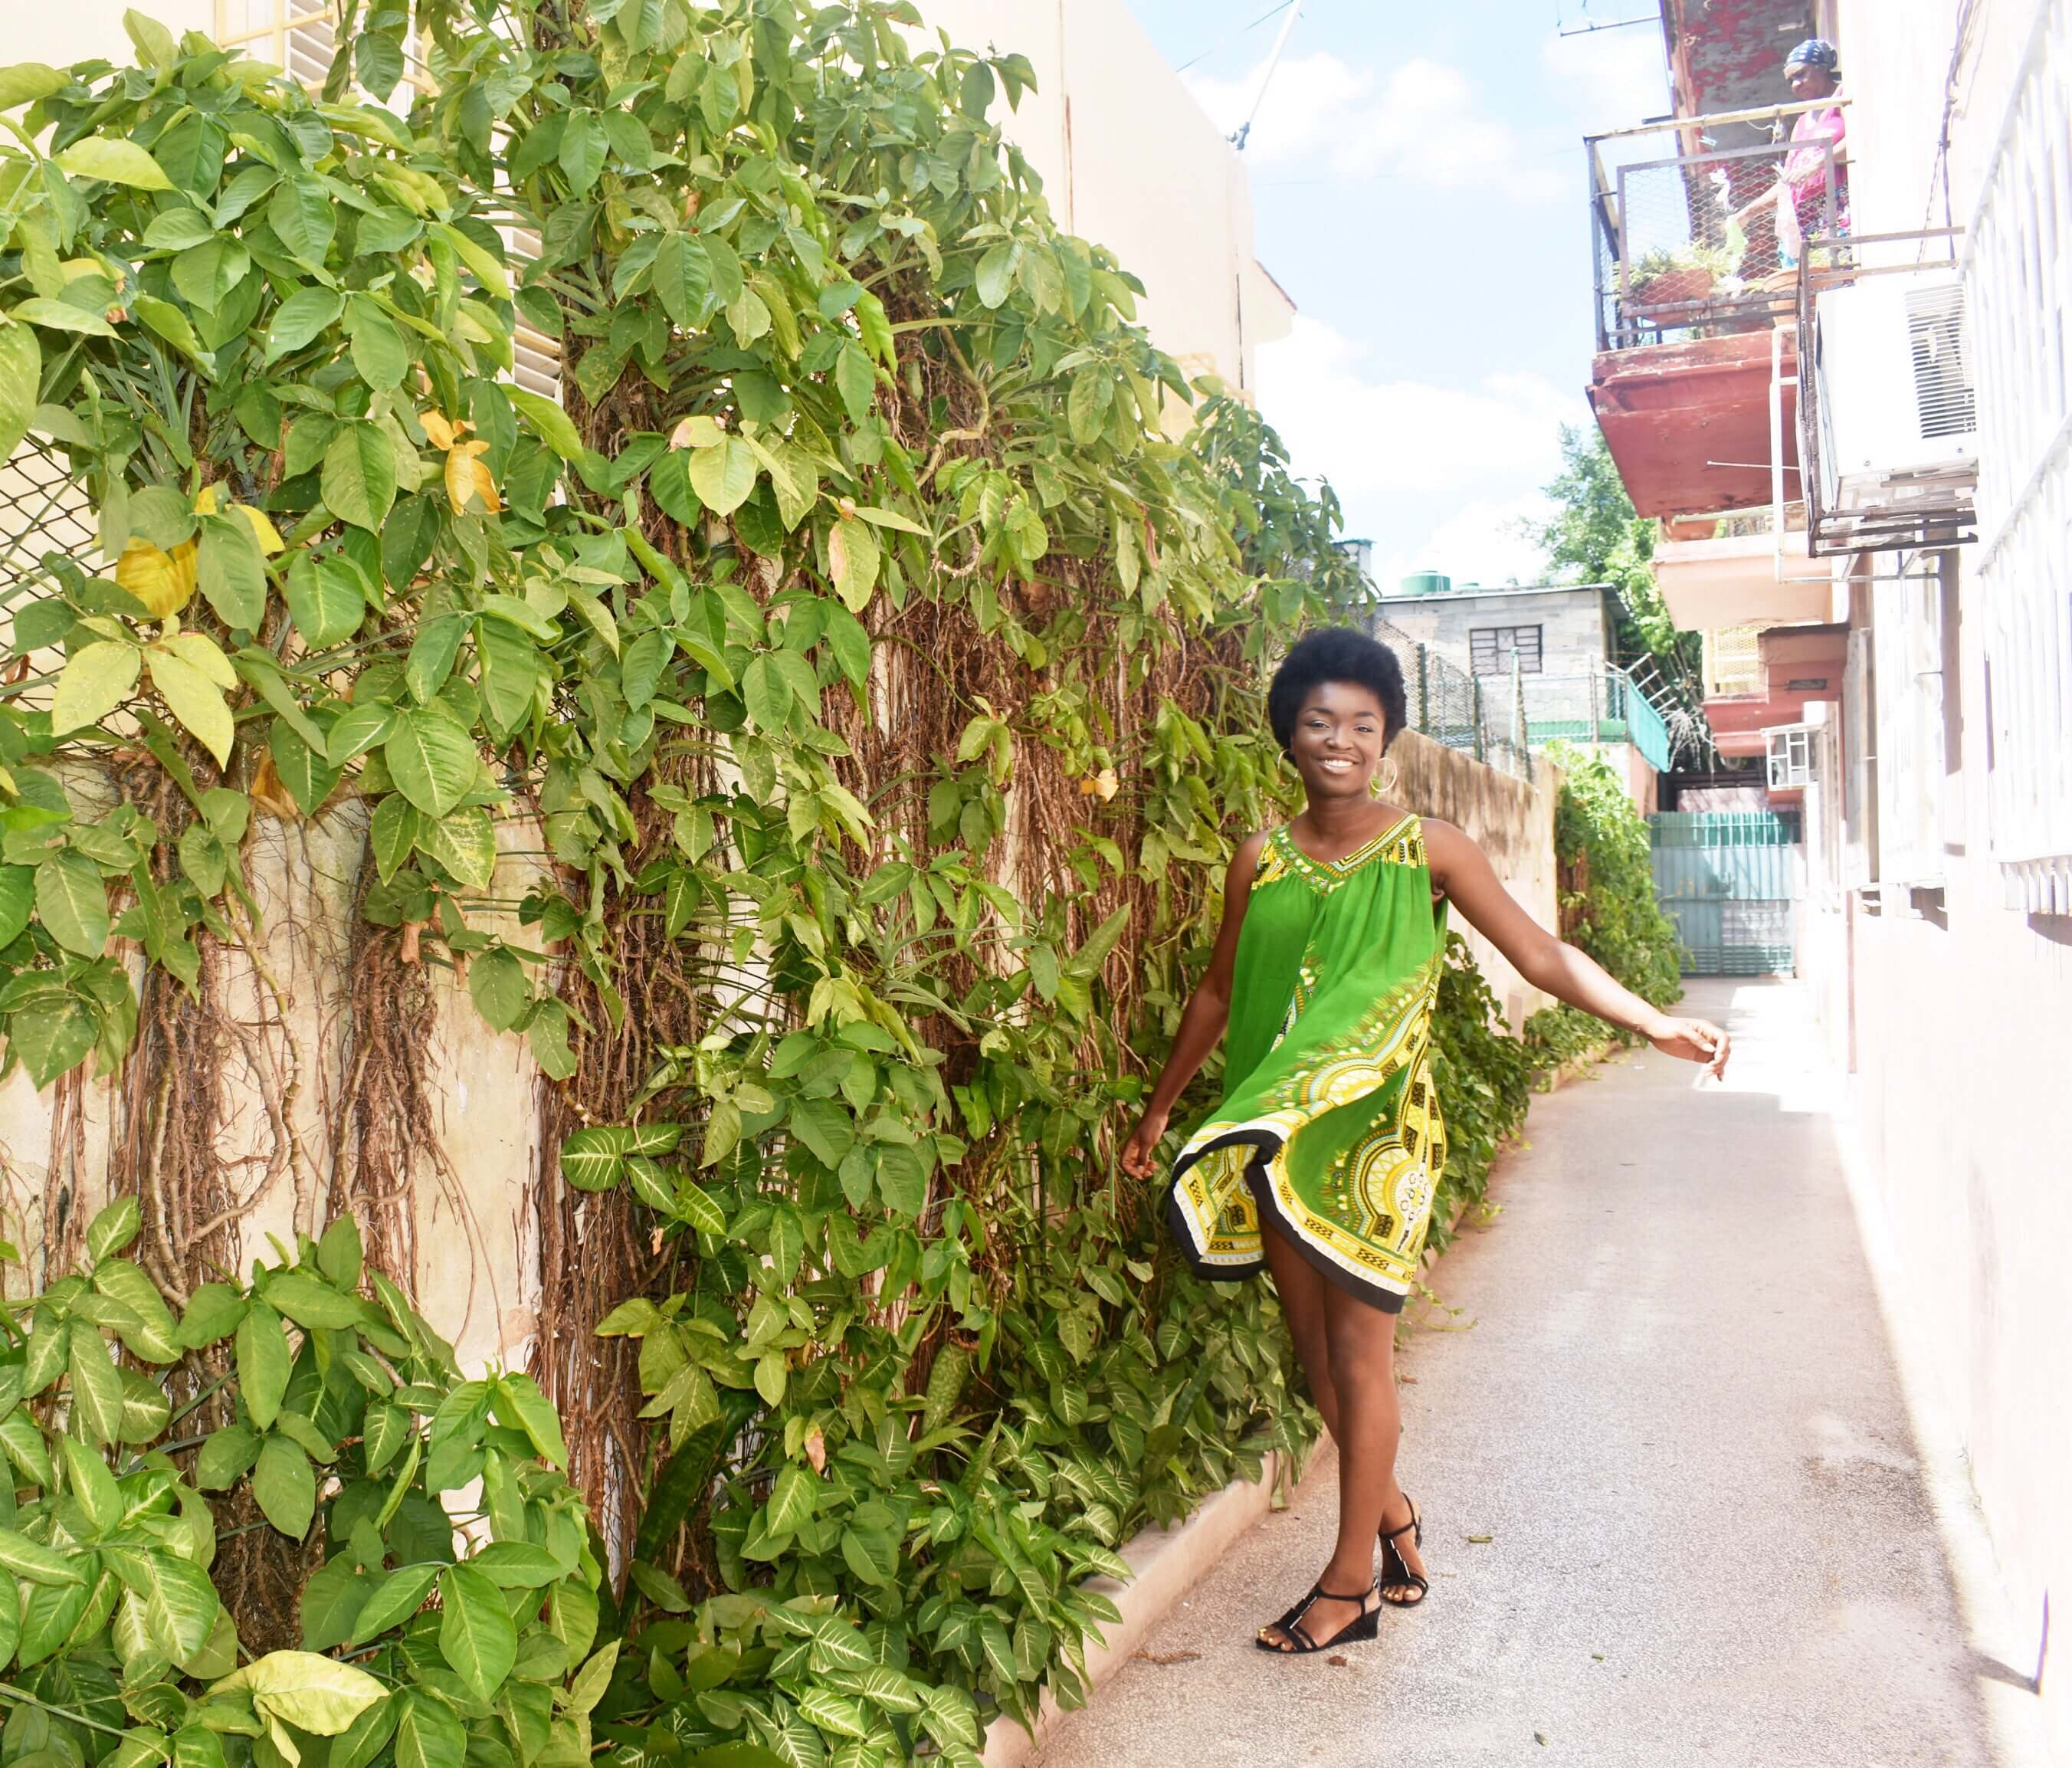 Somto twirling in front of the apartment in Vedado, Havana